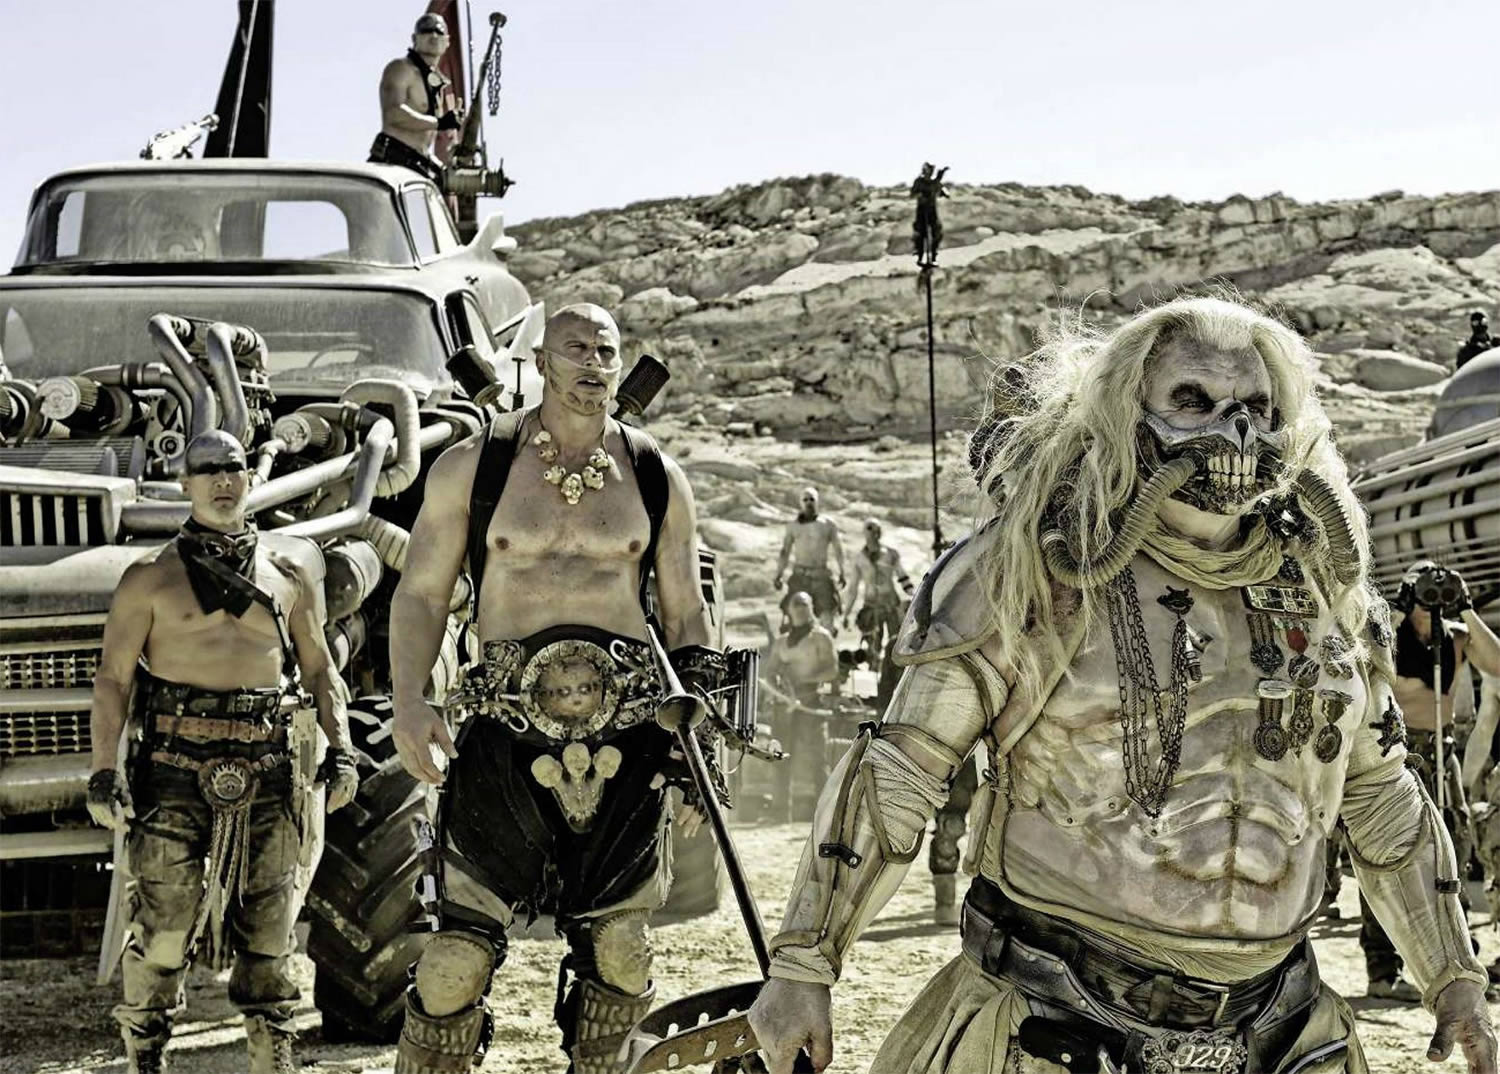 incredible villians in max mad: fury road